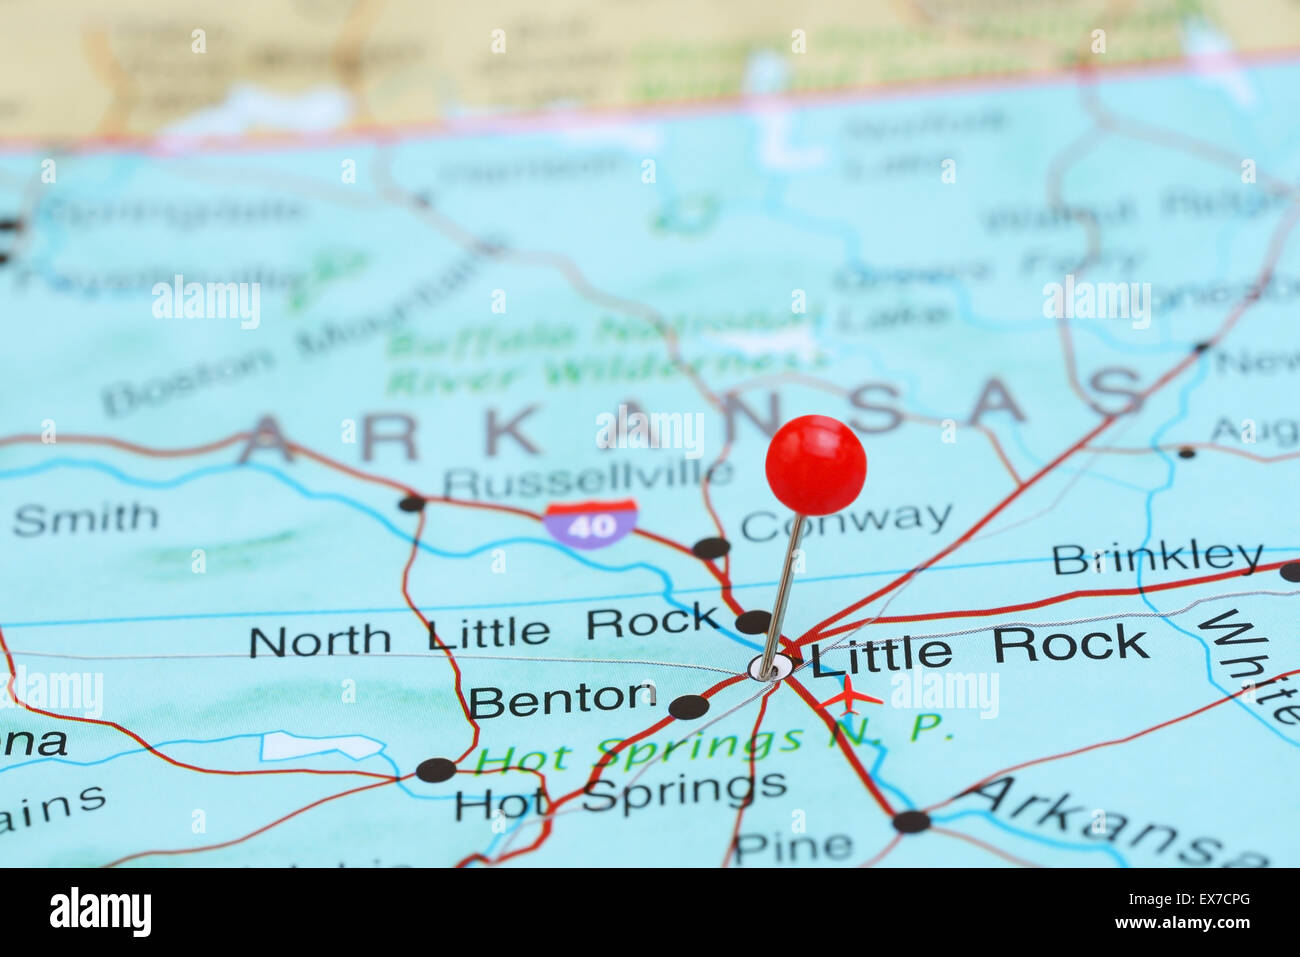 Little Rock pinned on a map of USA Stock Photo: 84986232 - Alamy